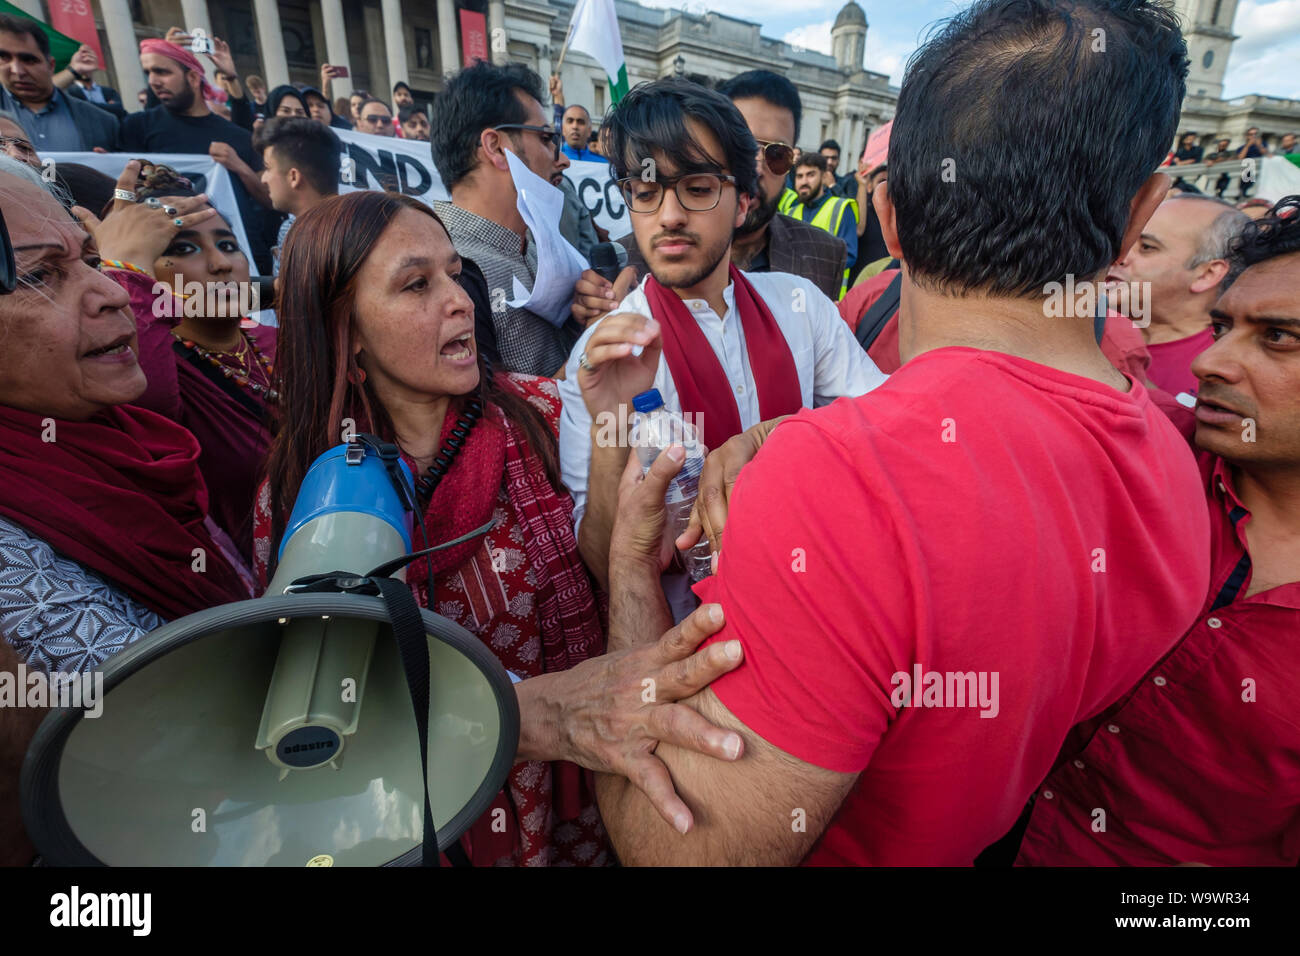 London, UK. 15th August 2019. Protesters argue at the protest in Trafalgar Square on Indian Independence Day condemning the arrests and human rights abuses in Kashmir and Modi's revocation of Article 370 of the Indian Constitution after a speaker called for only Kashmiri flags to be shown. A large group of protesters had come with Pakistani flags and after intervention by police officers the protest split into two groups. Peter Marshall/Alamy Live News Stock Photo